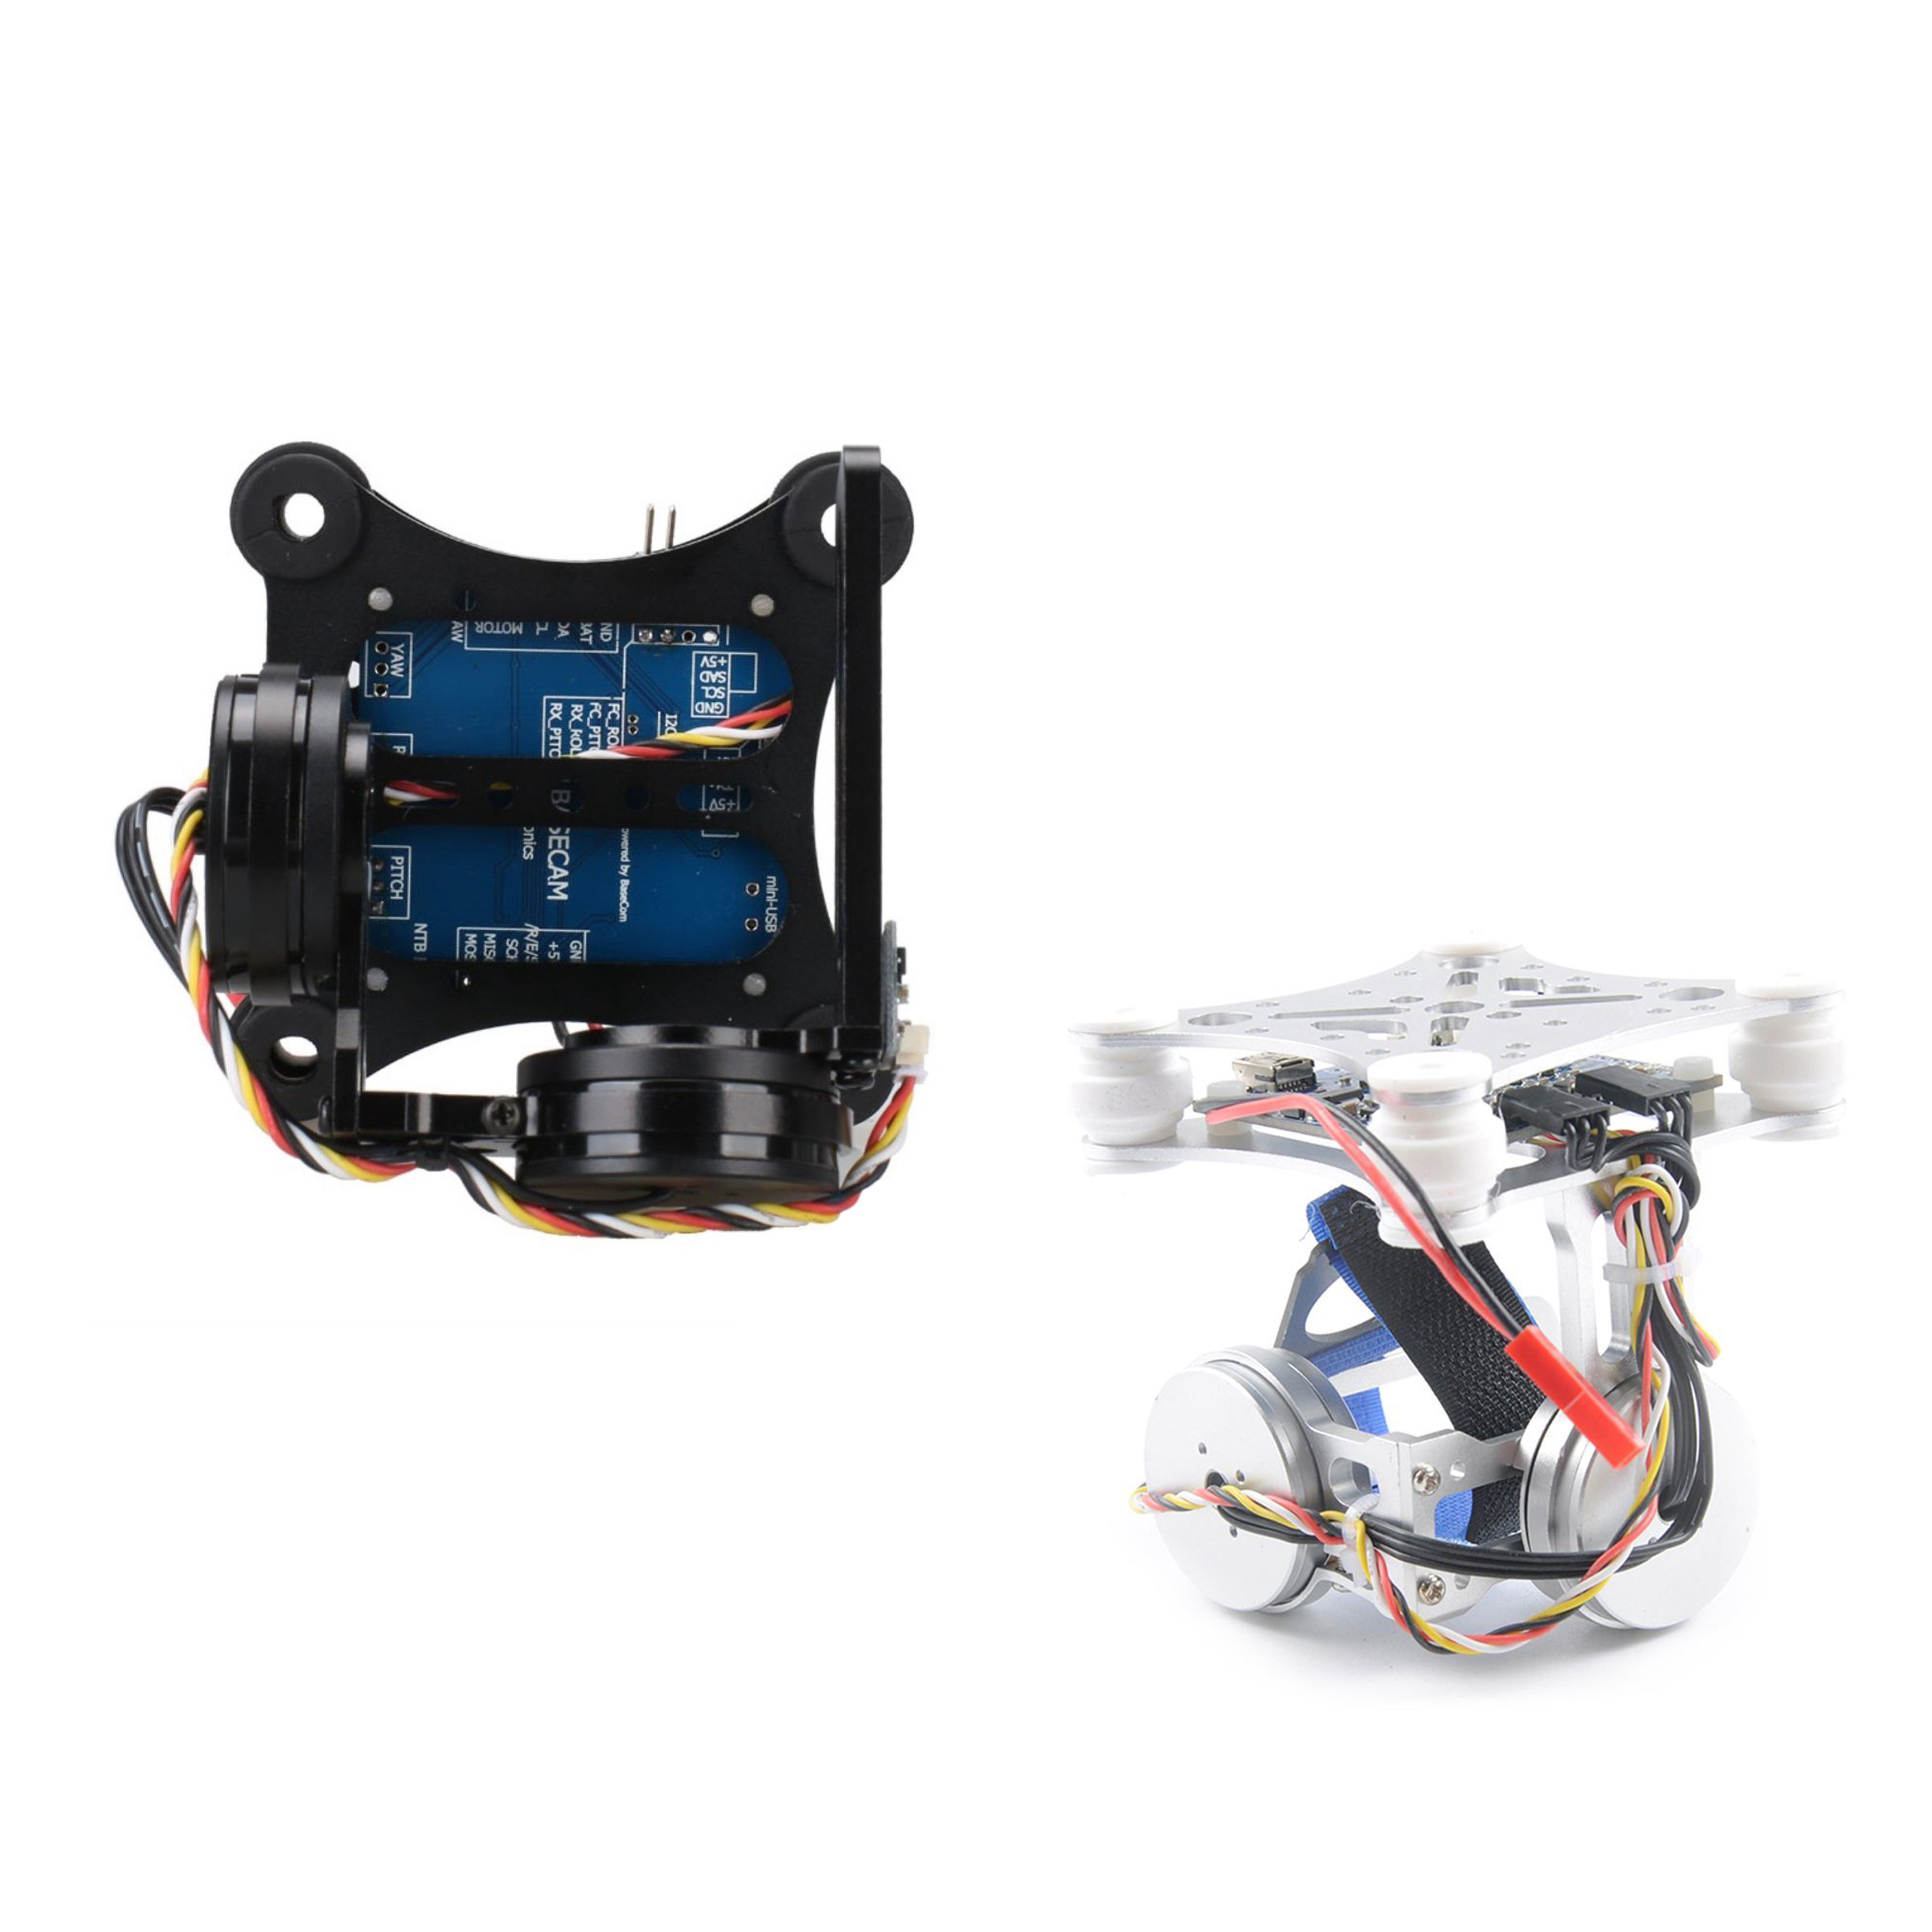 2X(2 Axis 2D Brushless telecamera  Gimbal for Gopro SJCAM XIAOMI YI azione Came Y9F1)  ecco l'ultimo